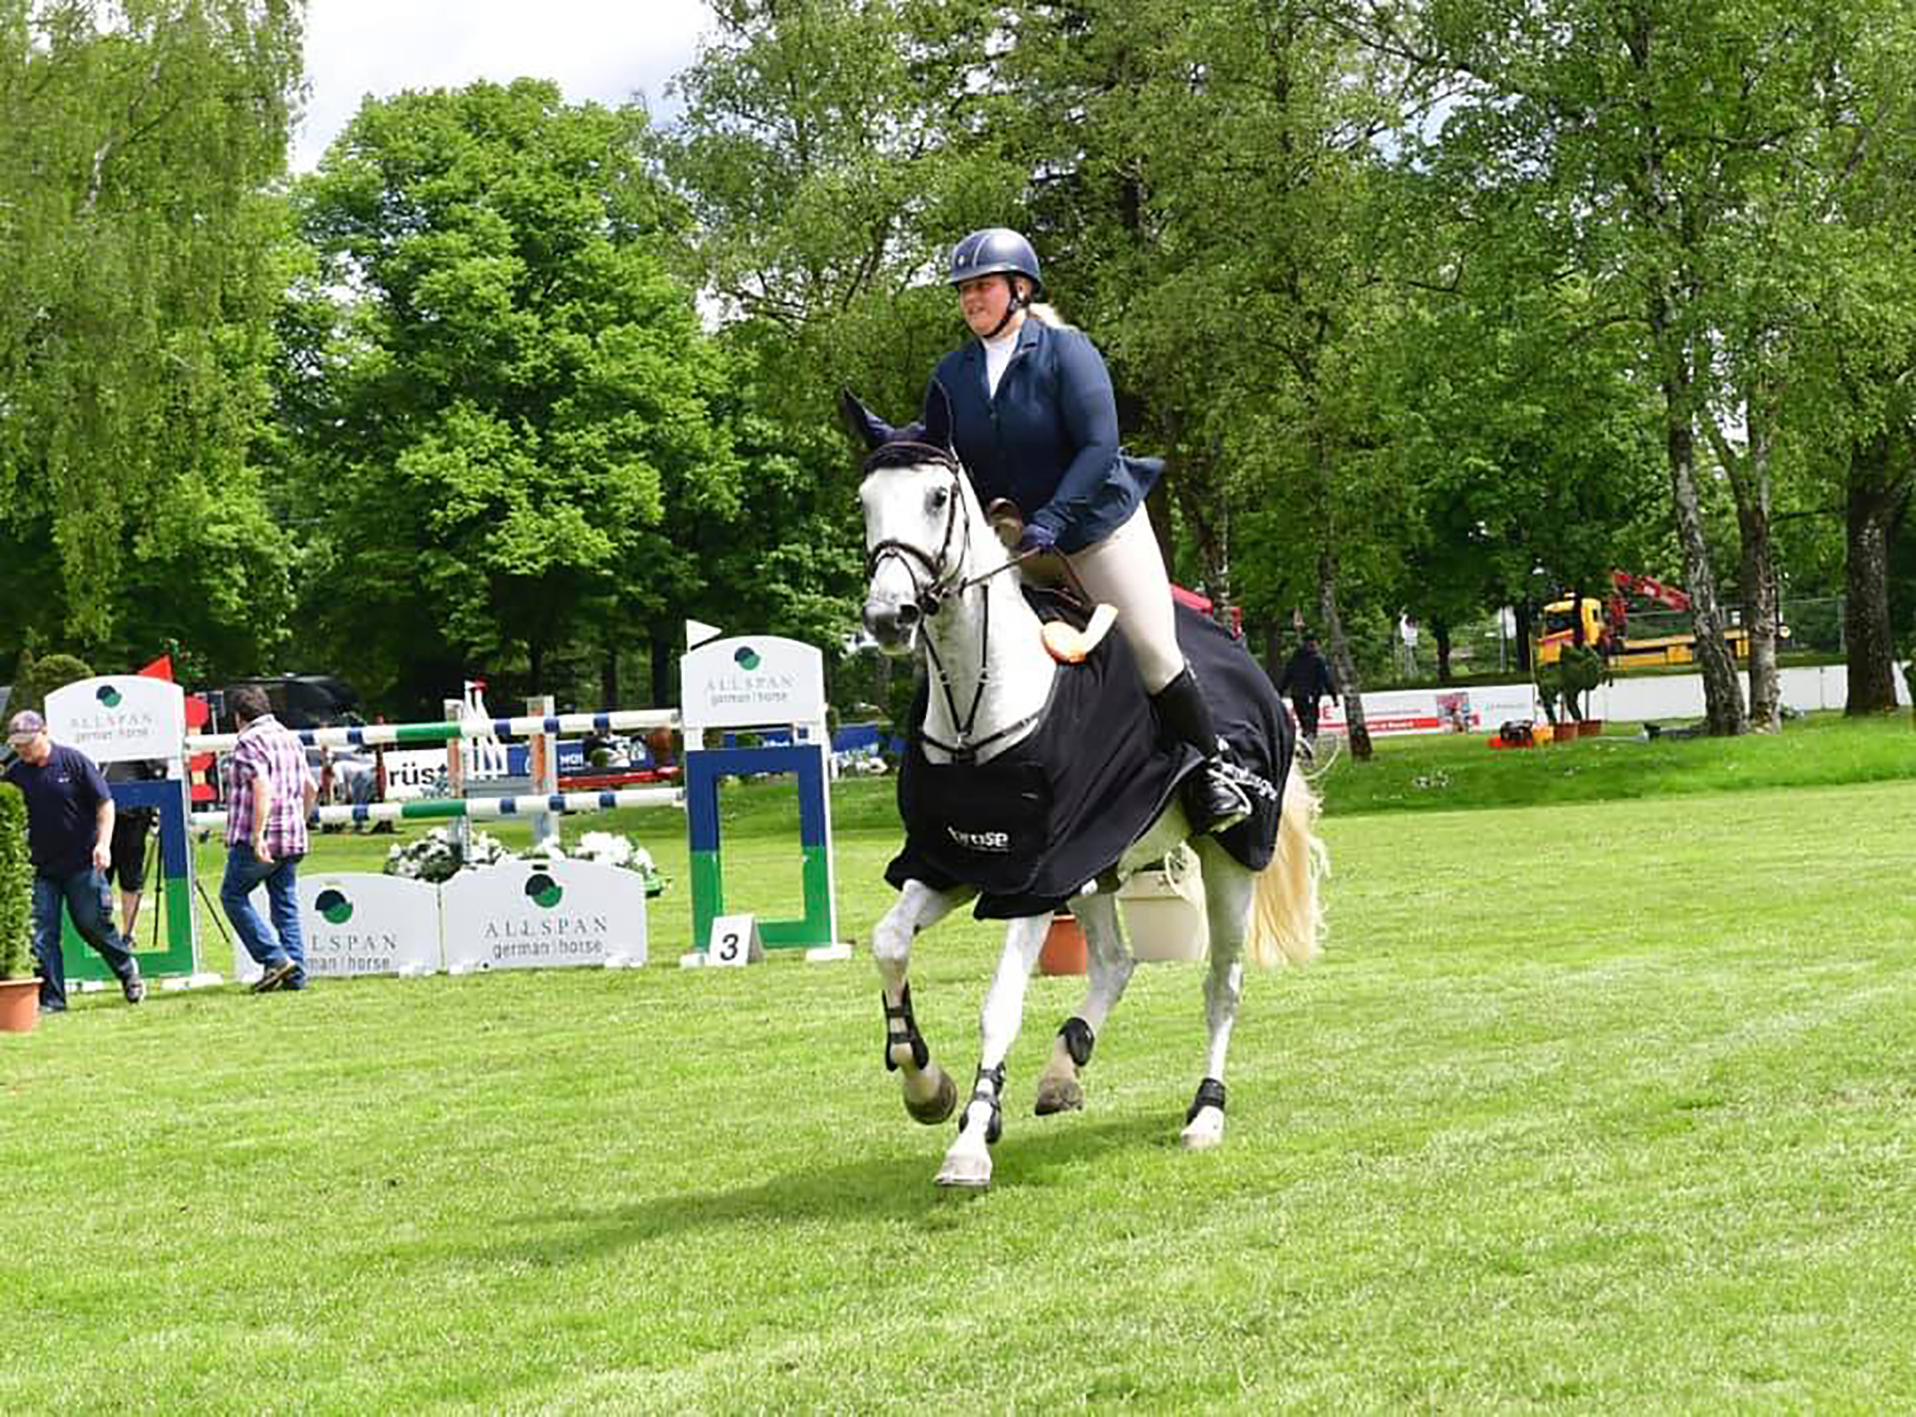 International Para Showjumper Joins Robinson Animal Healthcare